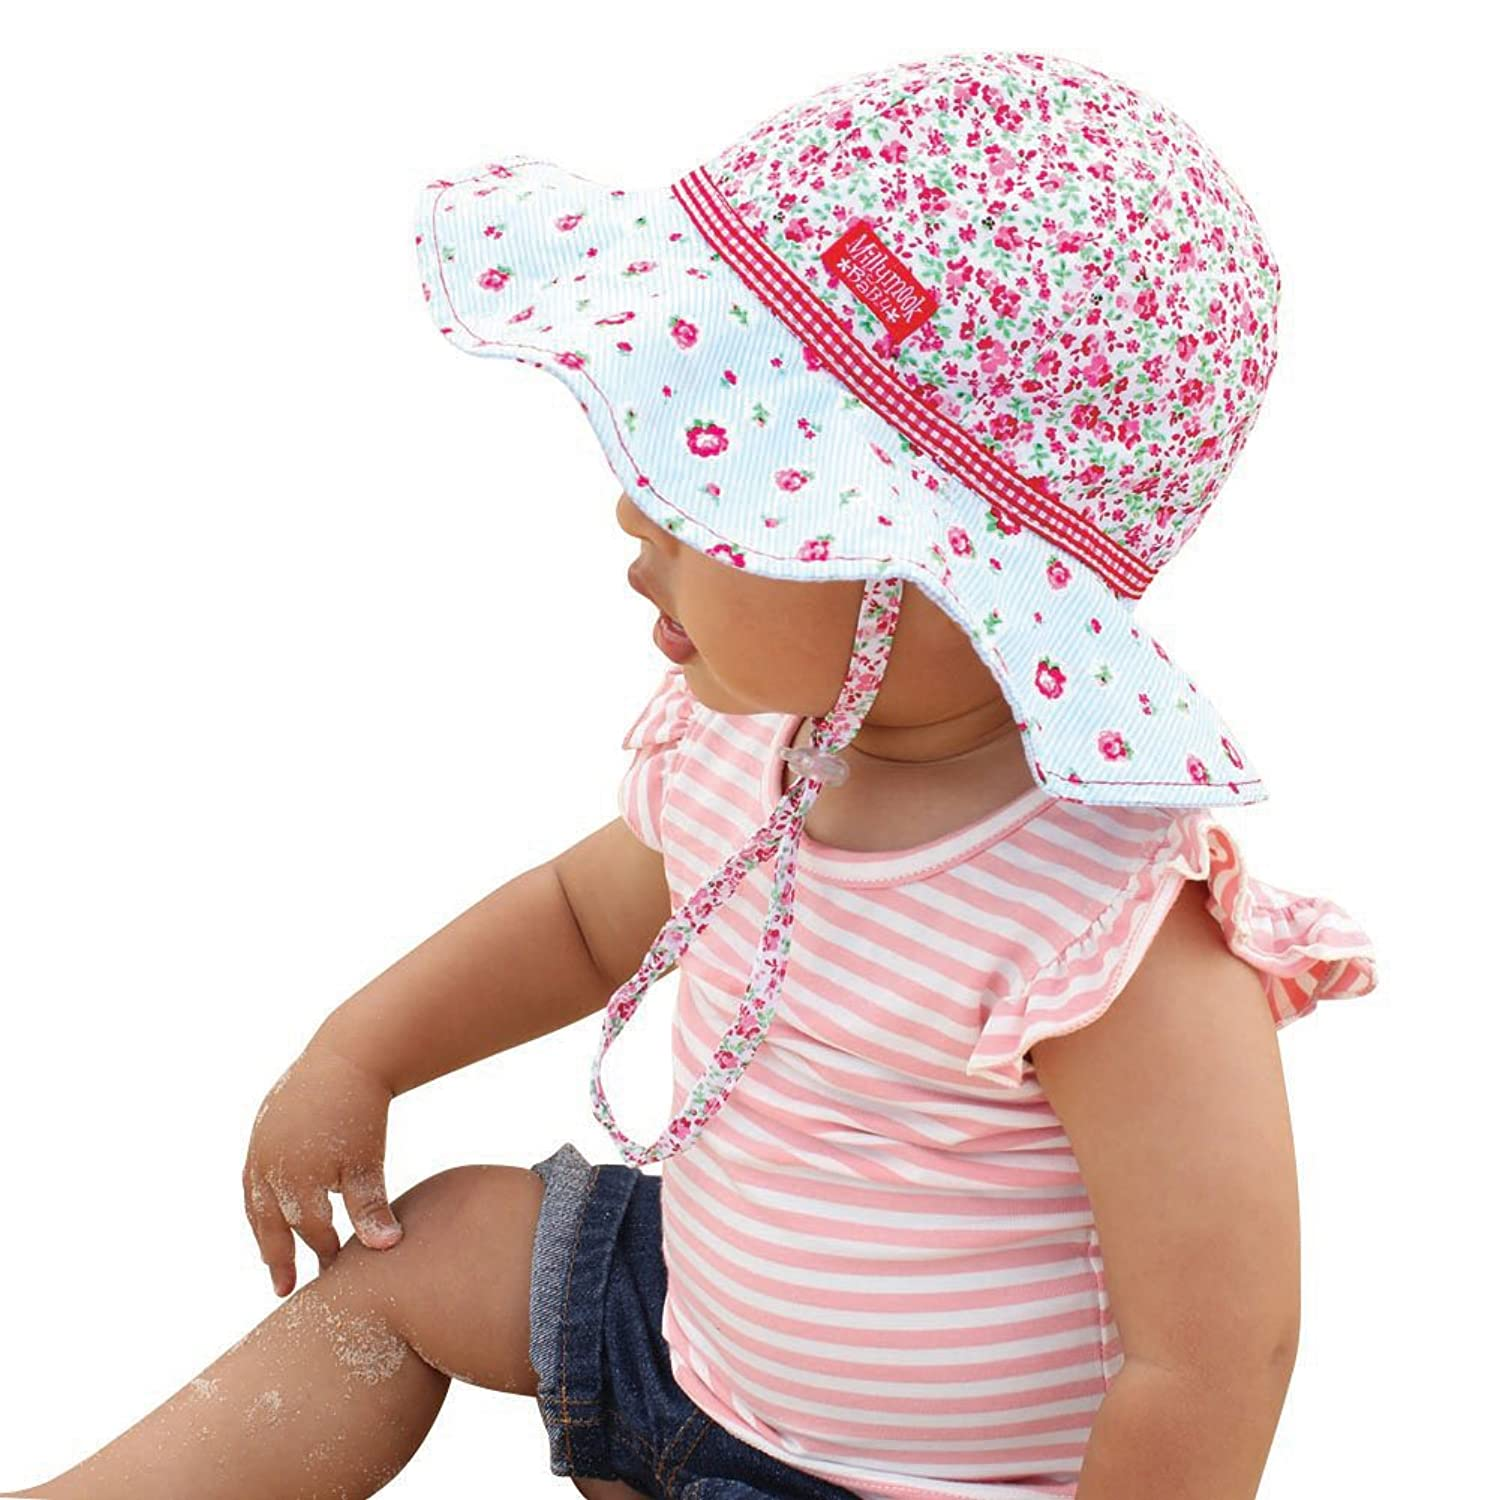 These cool hats for baby boys and girls are instantly photo worthy. Be the hip aunt, uncle or family friend who adds a touch of style to that special kid's wardrobe with a selection from Old Navy. Enjoy the warm weather and sunny days, while keeping baby healthy and happy with fantastic baby sun hats .